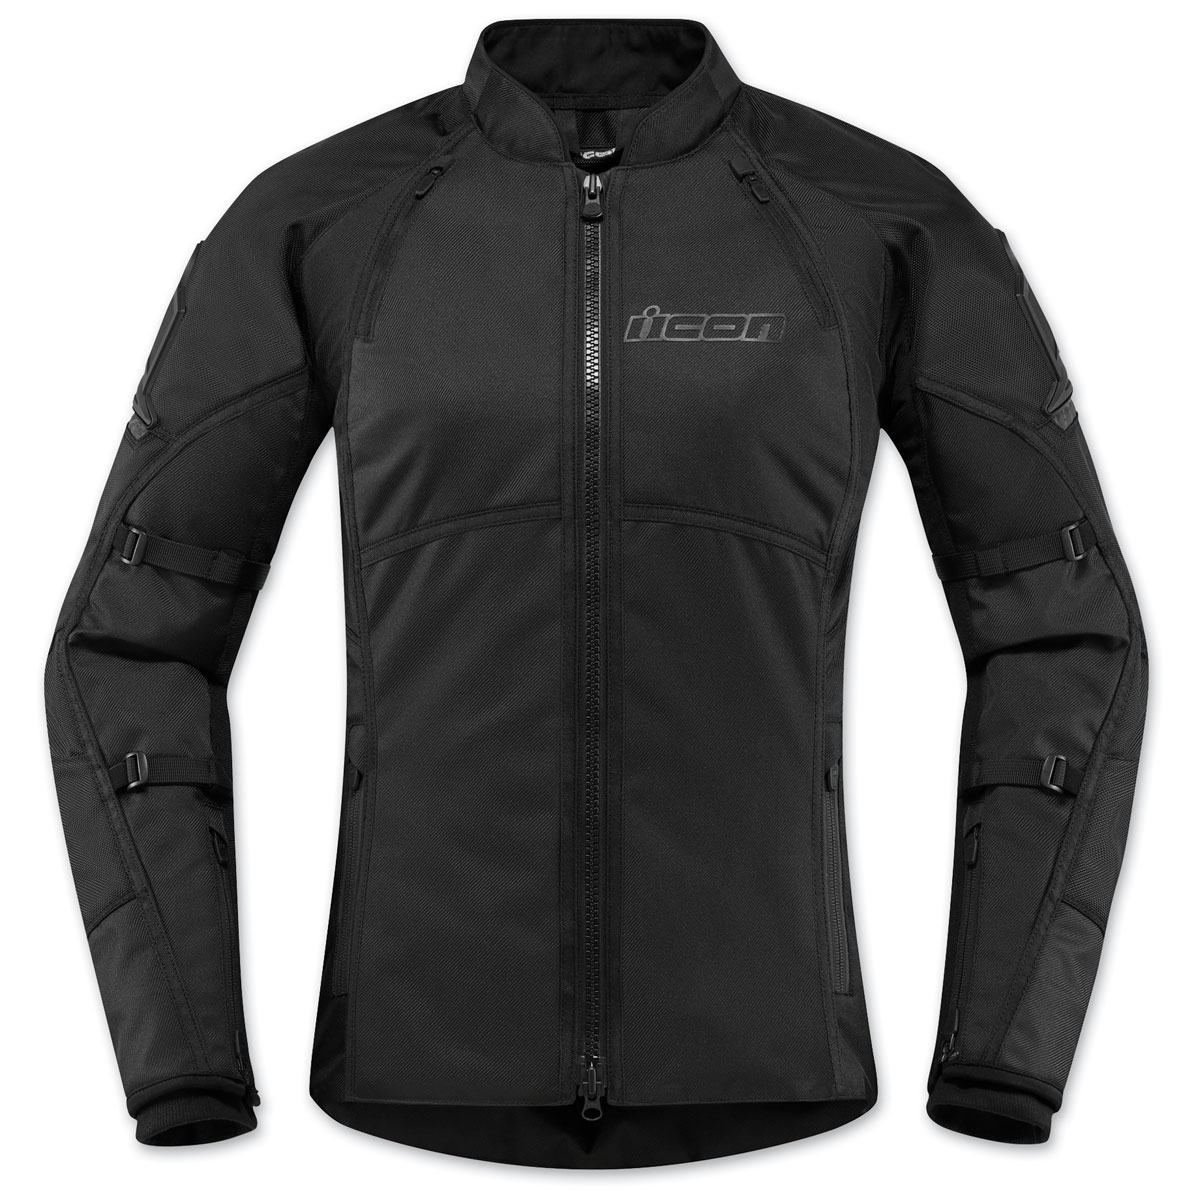 ICON Women's Automag 2 Stealth Textile Jacket